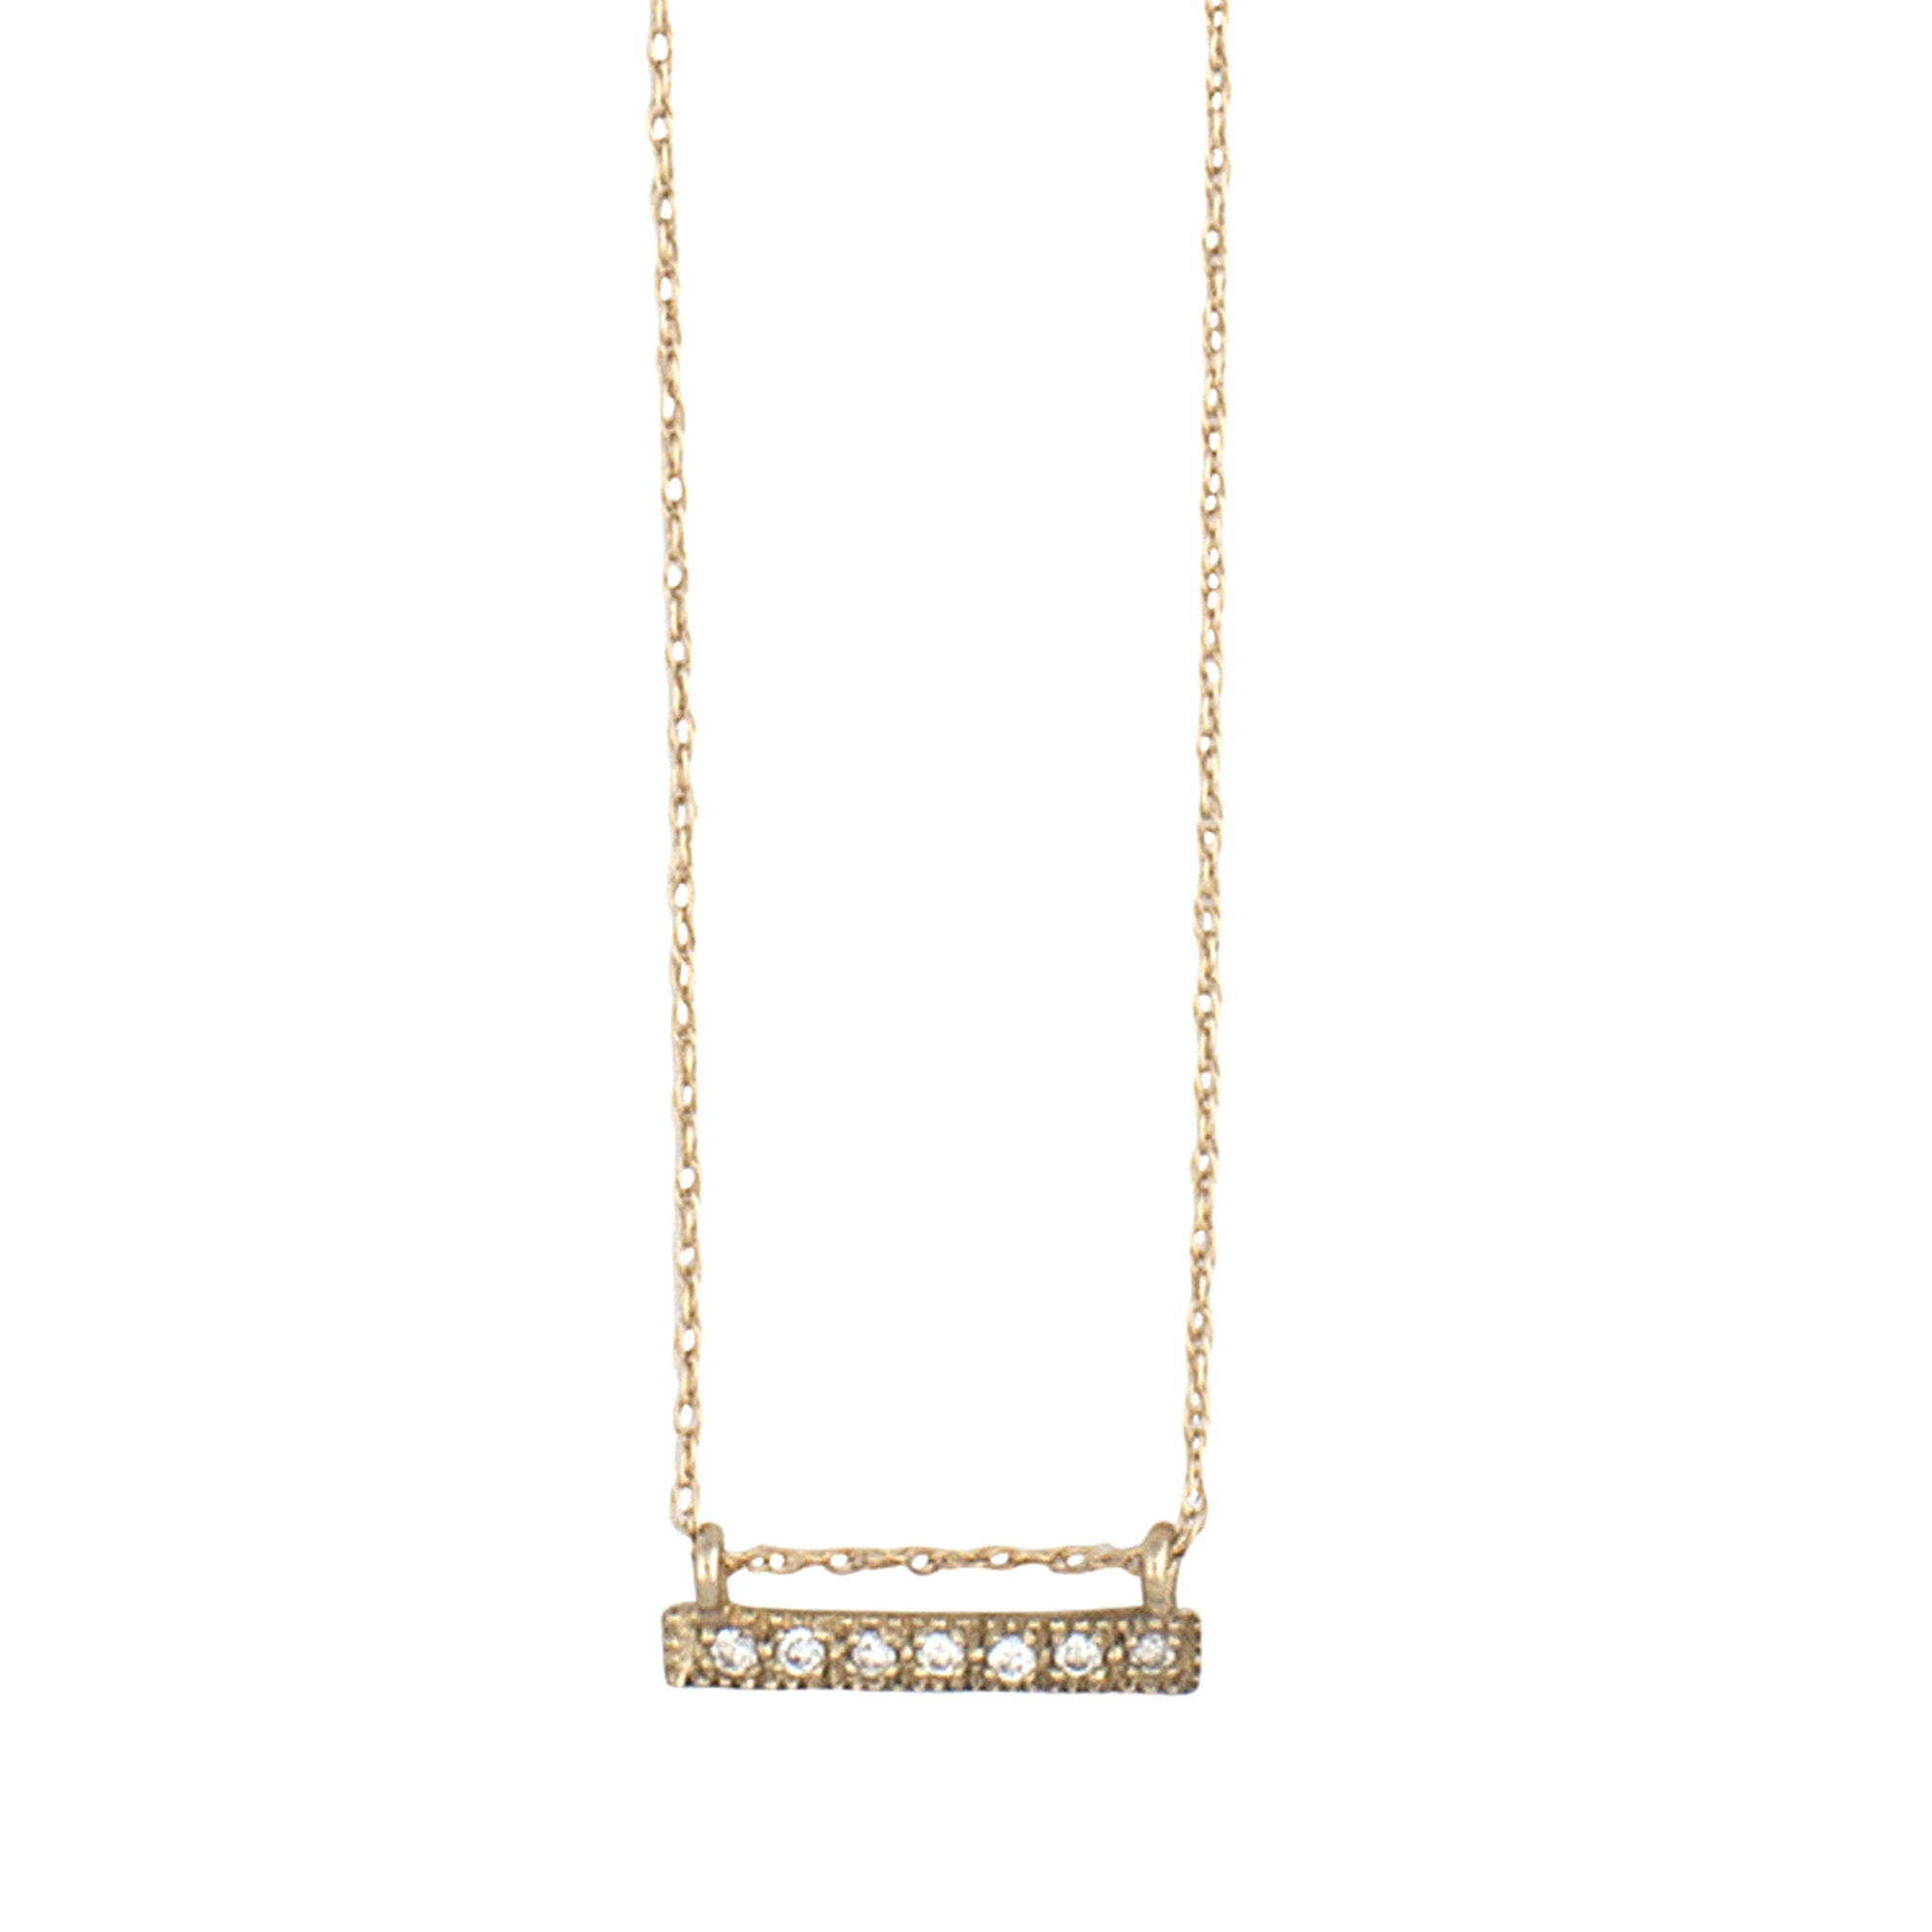 14K gold necklace with diamonds pendant